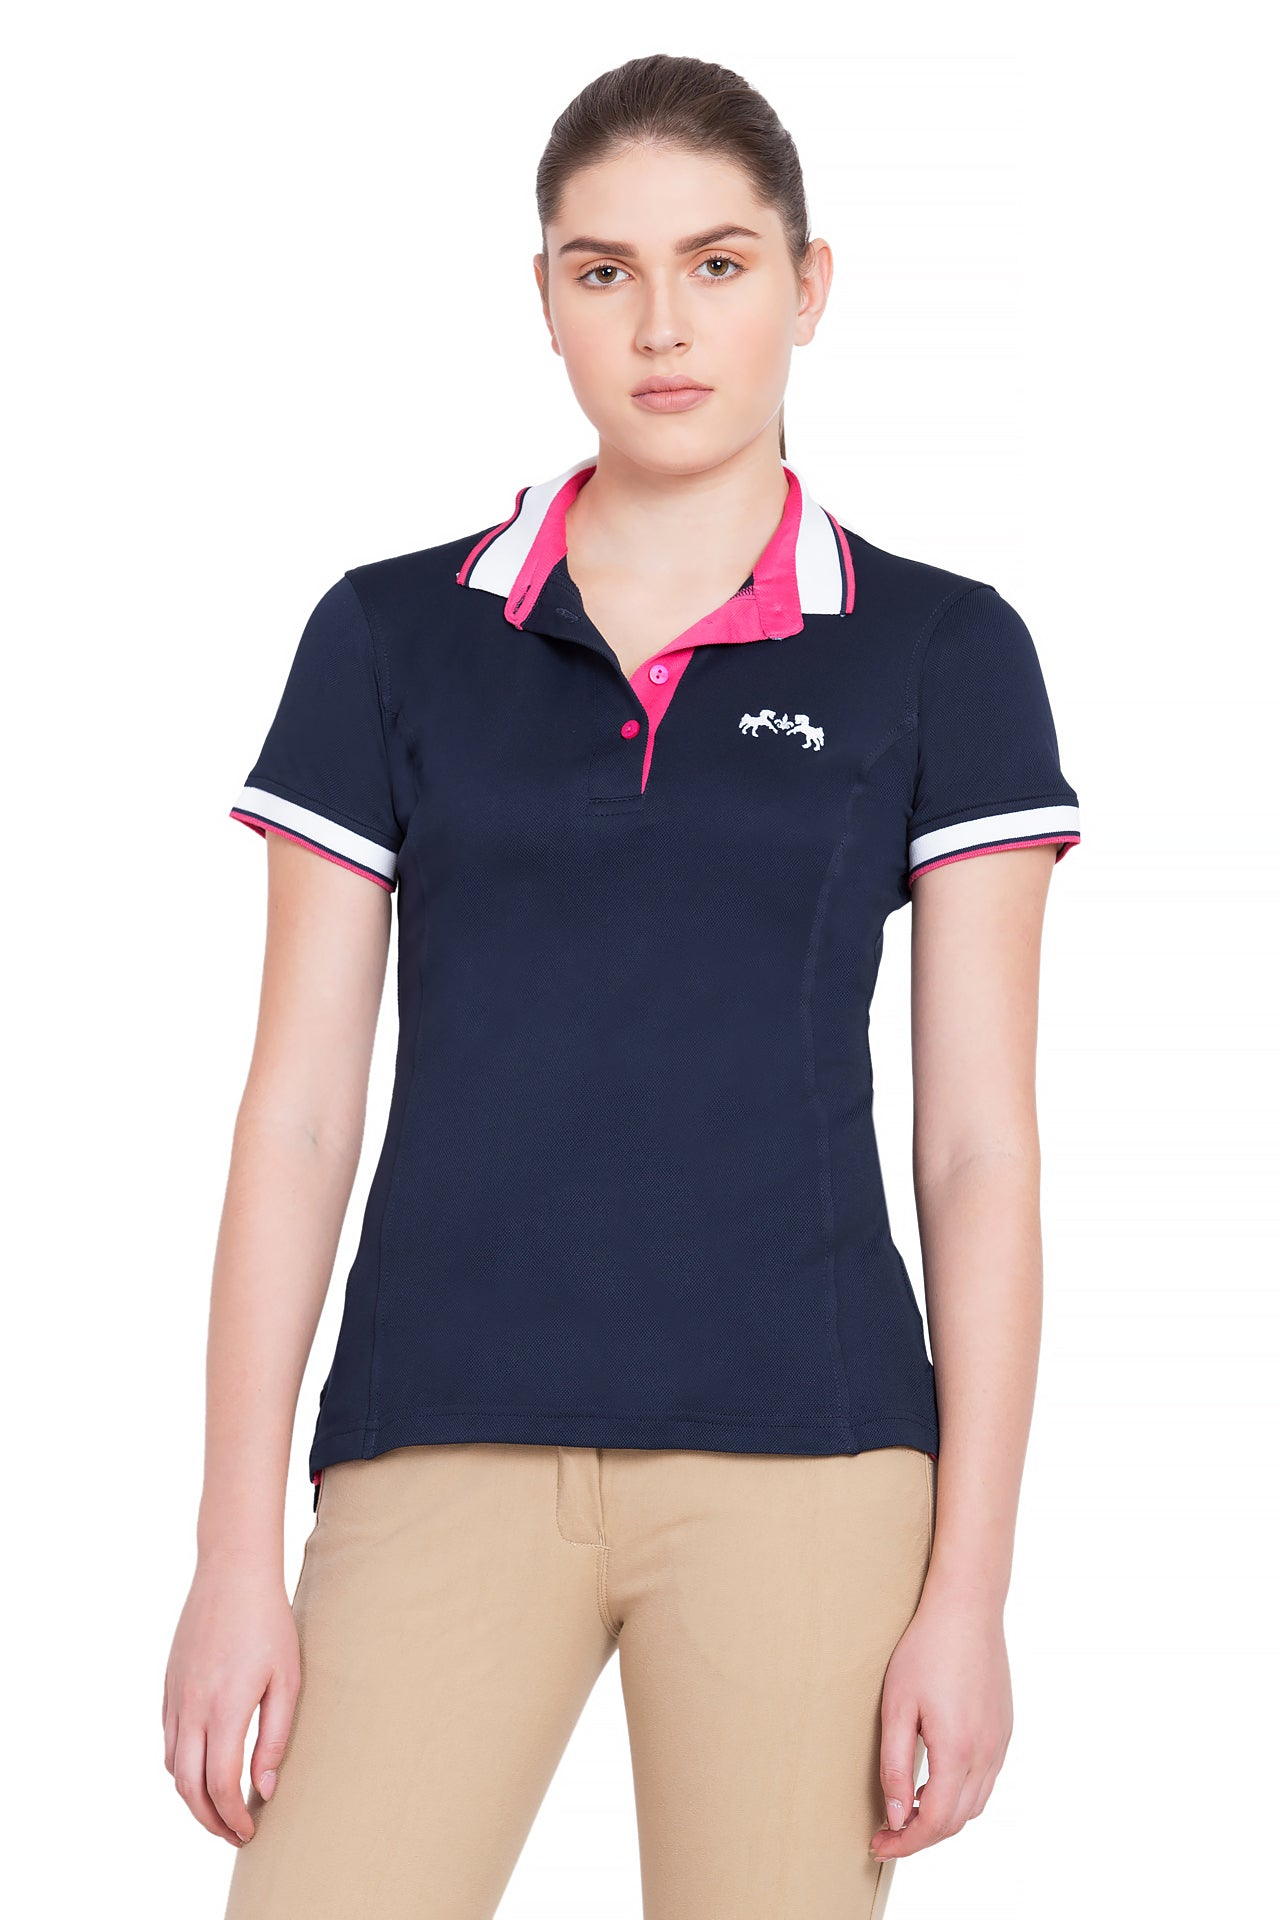 Ladies Kirsten Short Sleeve Polo Sport Shirt - Equine Couture - Breeches.com